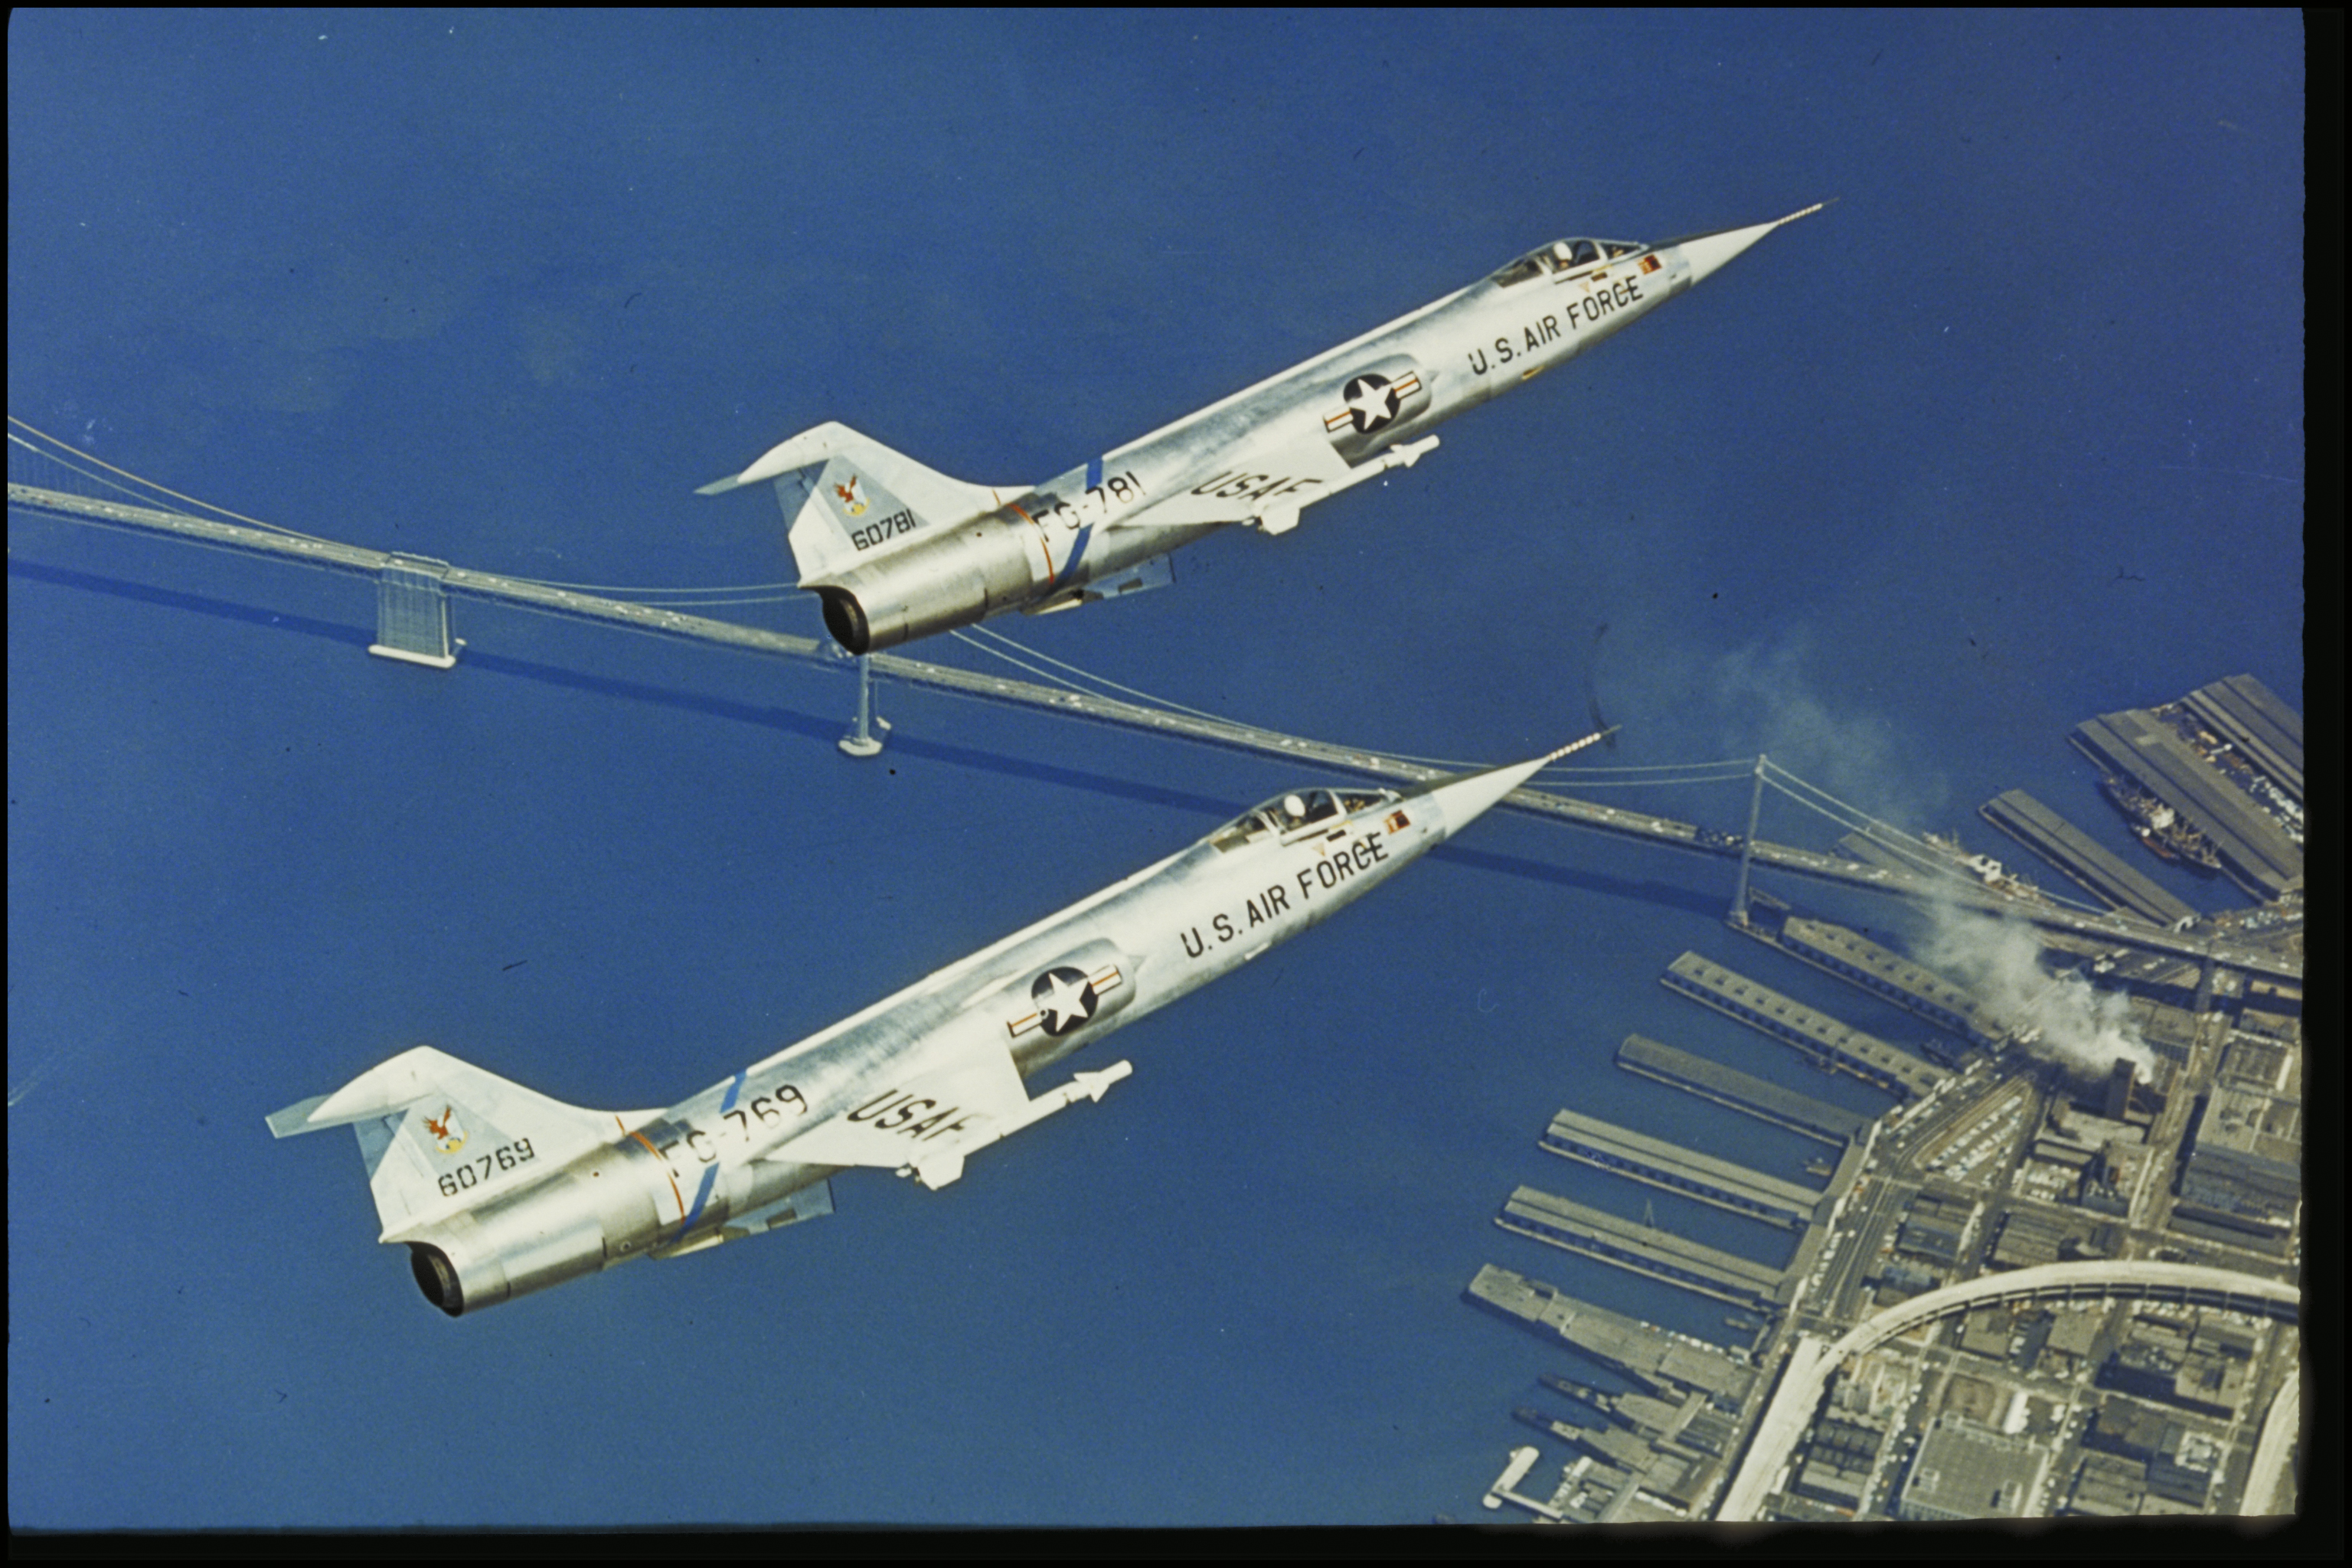 ... the flight of an aircraft already in production—the sleek, yet durable,  Lockheed F-104 Starfighter—they instantly knew they had found the ideal  plane.